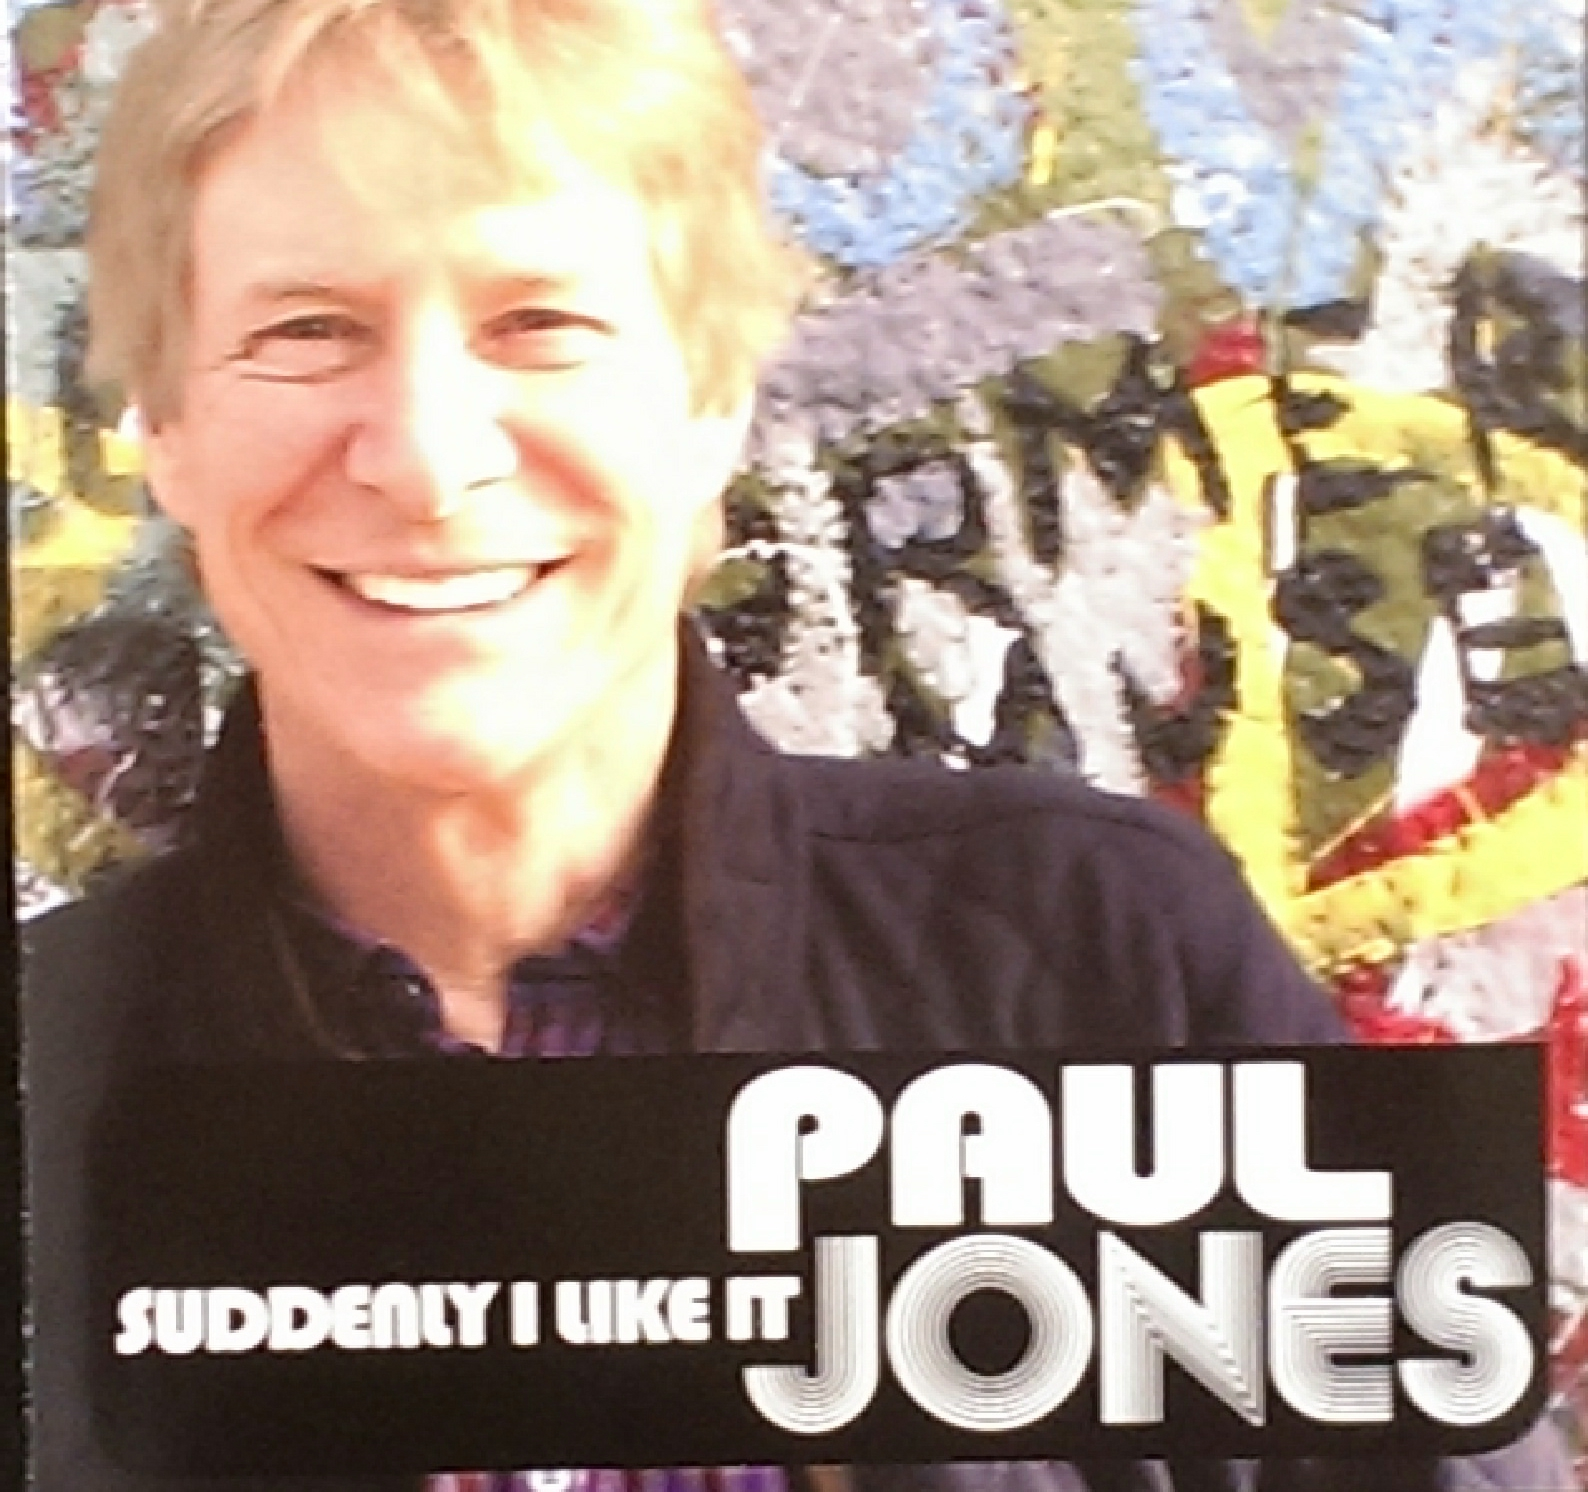 *NEW* Paul Jones \'Suddenly I Like It\' SIGNED COPY